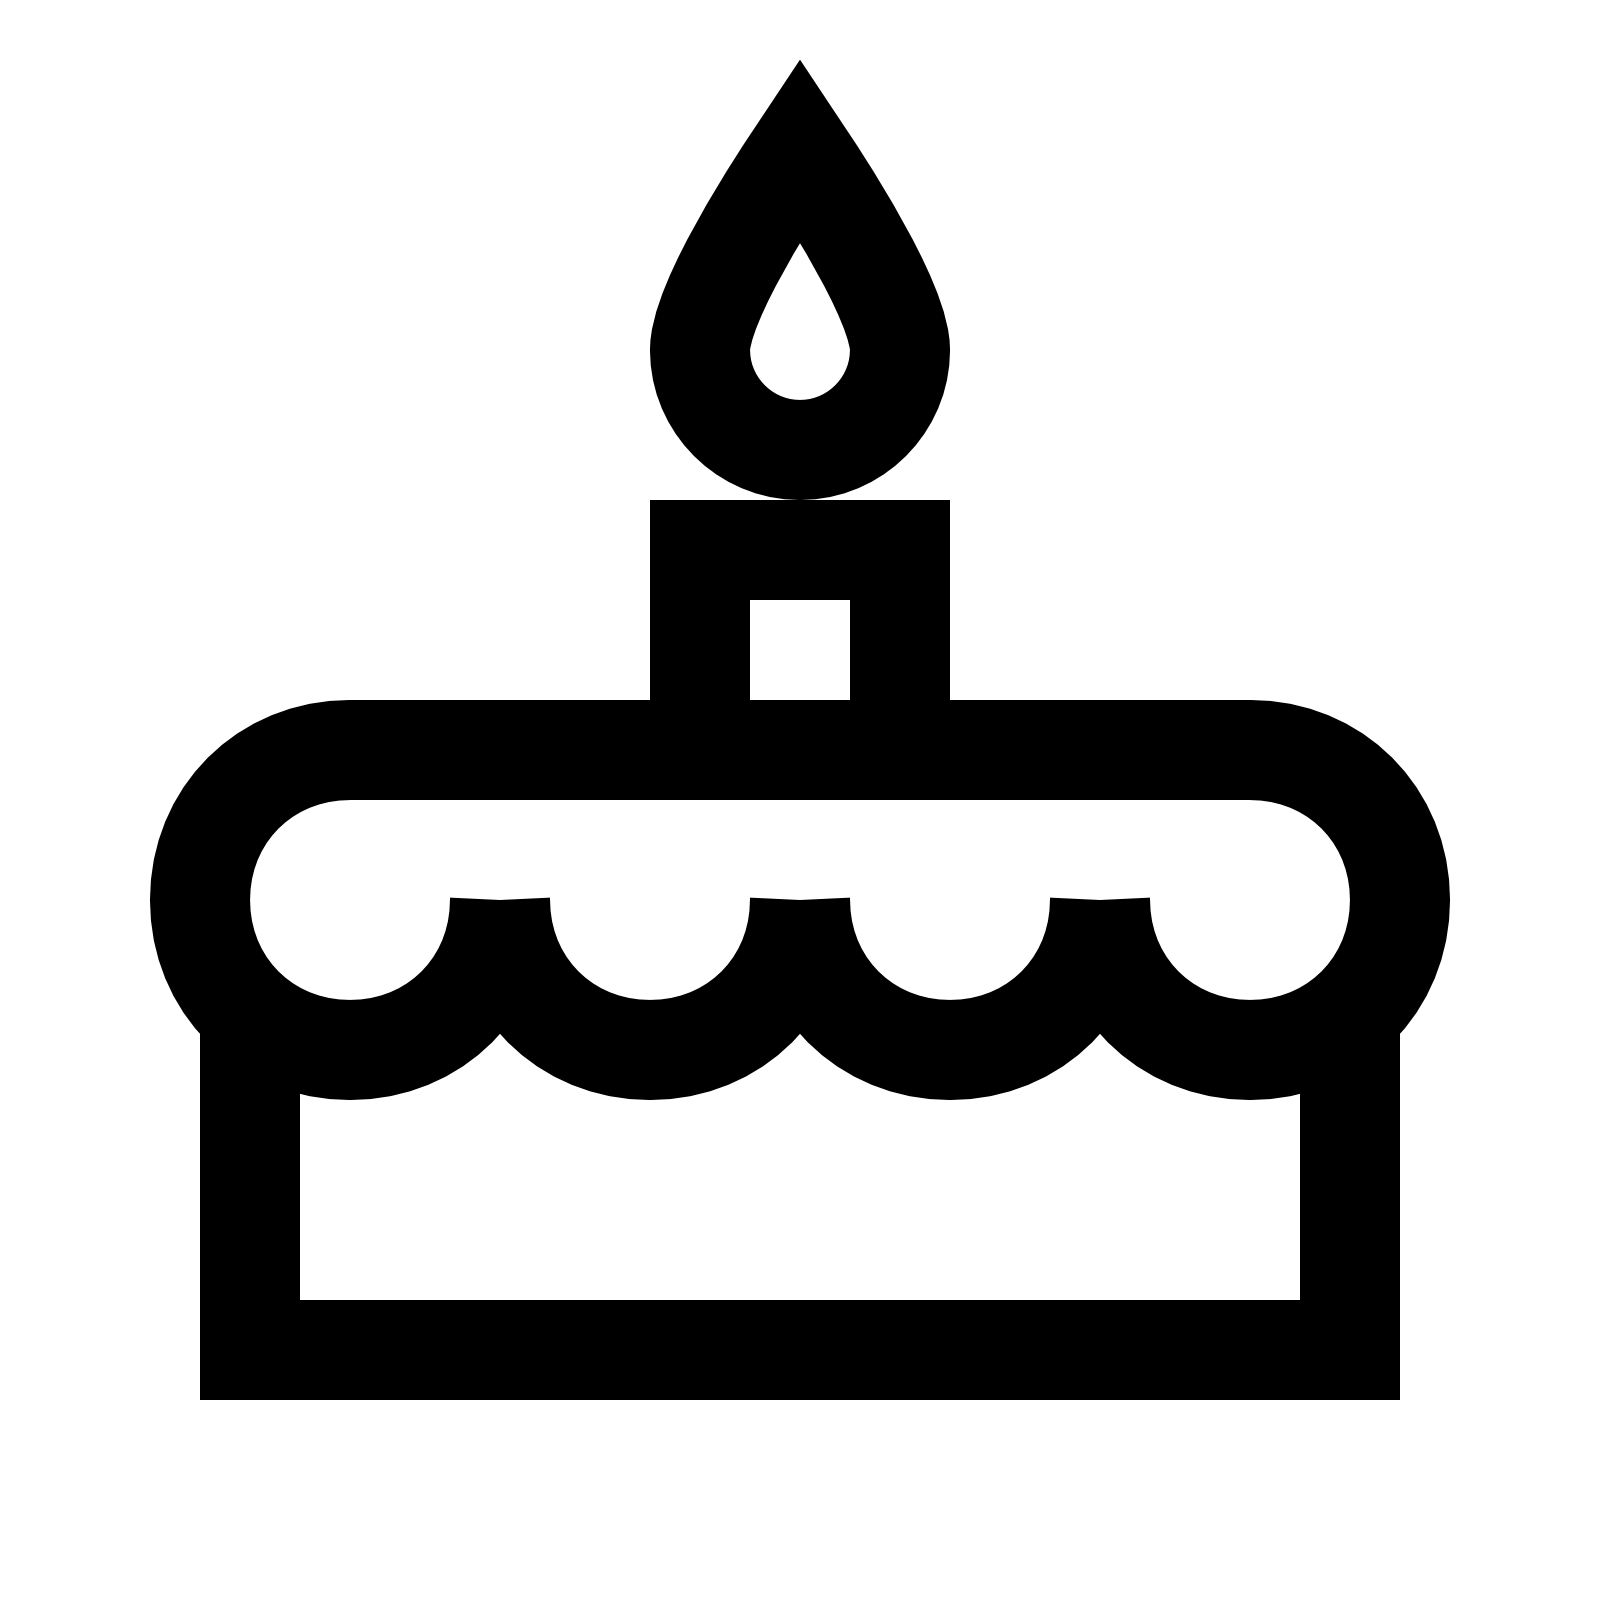 Birthday Cake Silhouette Vector